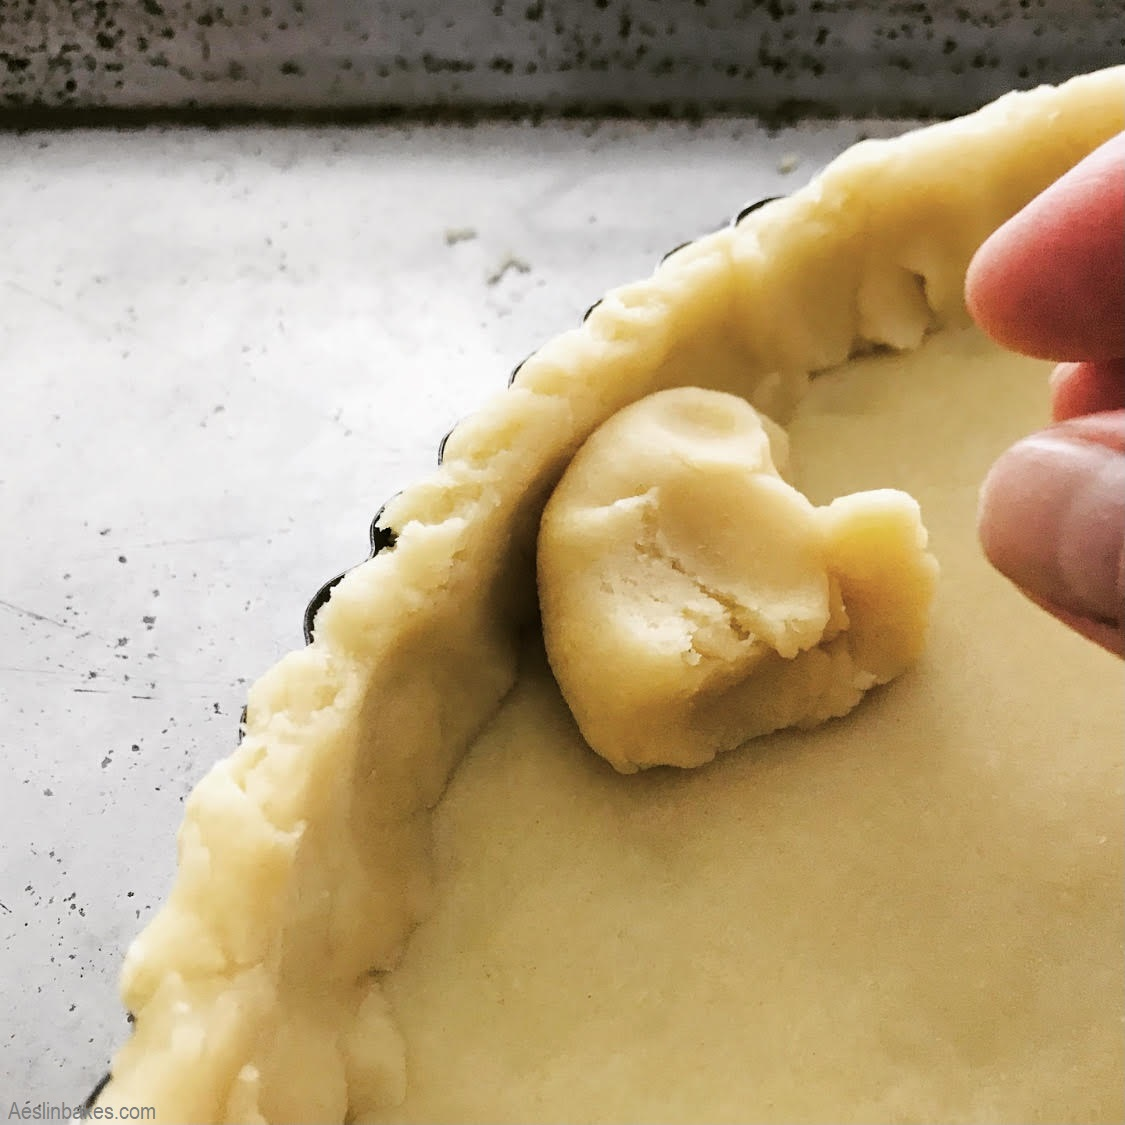 pressing in sweet pastry dough with dough